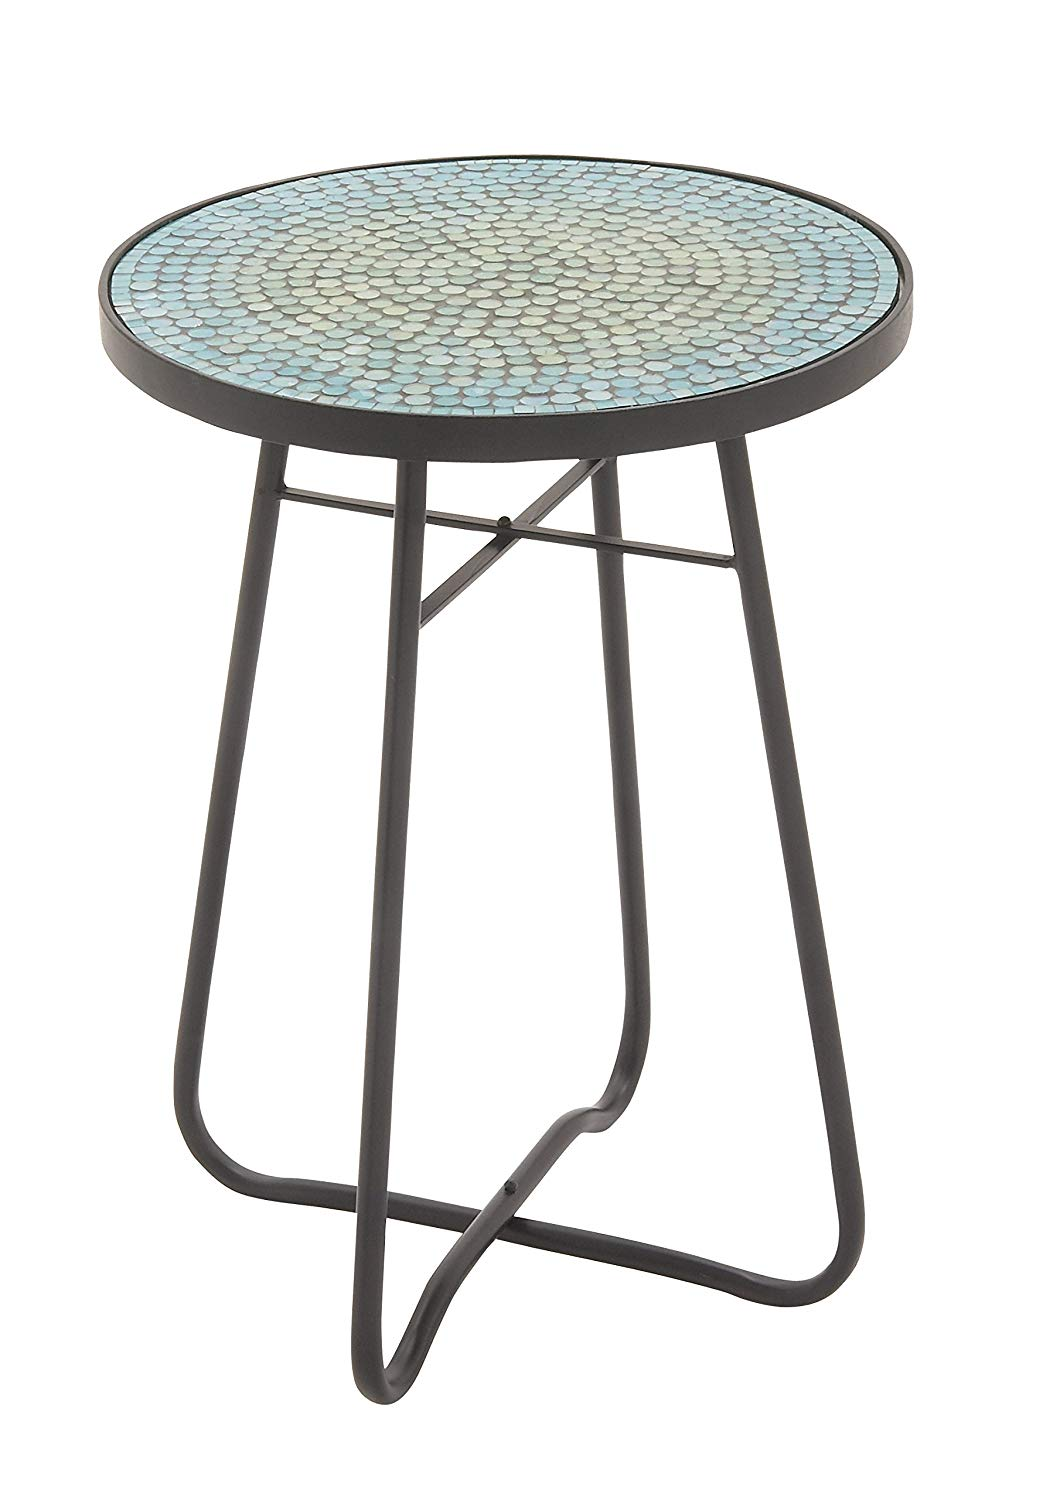 uma enterprises metal glass turquoise accent table red round inch width height kitchen dining furniture choice old wooden small trestle legs skinny sofa counter set oriental lamp